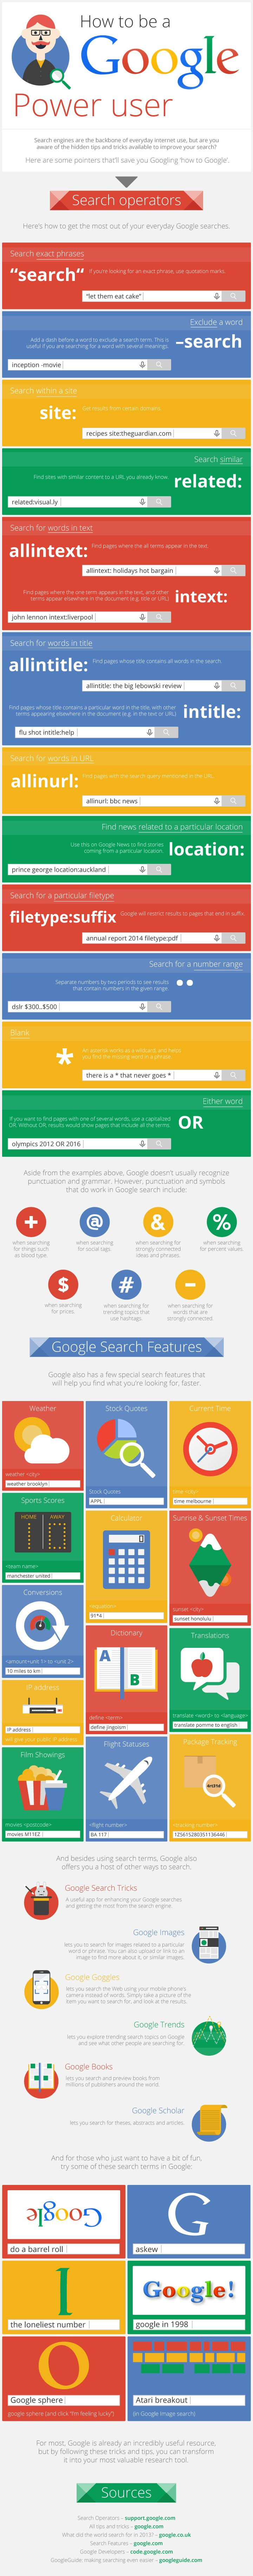 Infographic: How to be a Google Power user #infographic